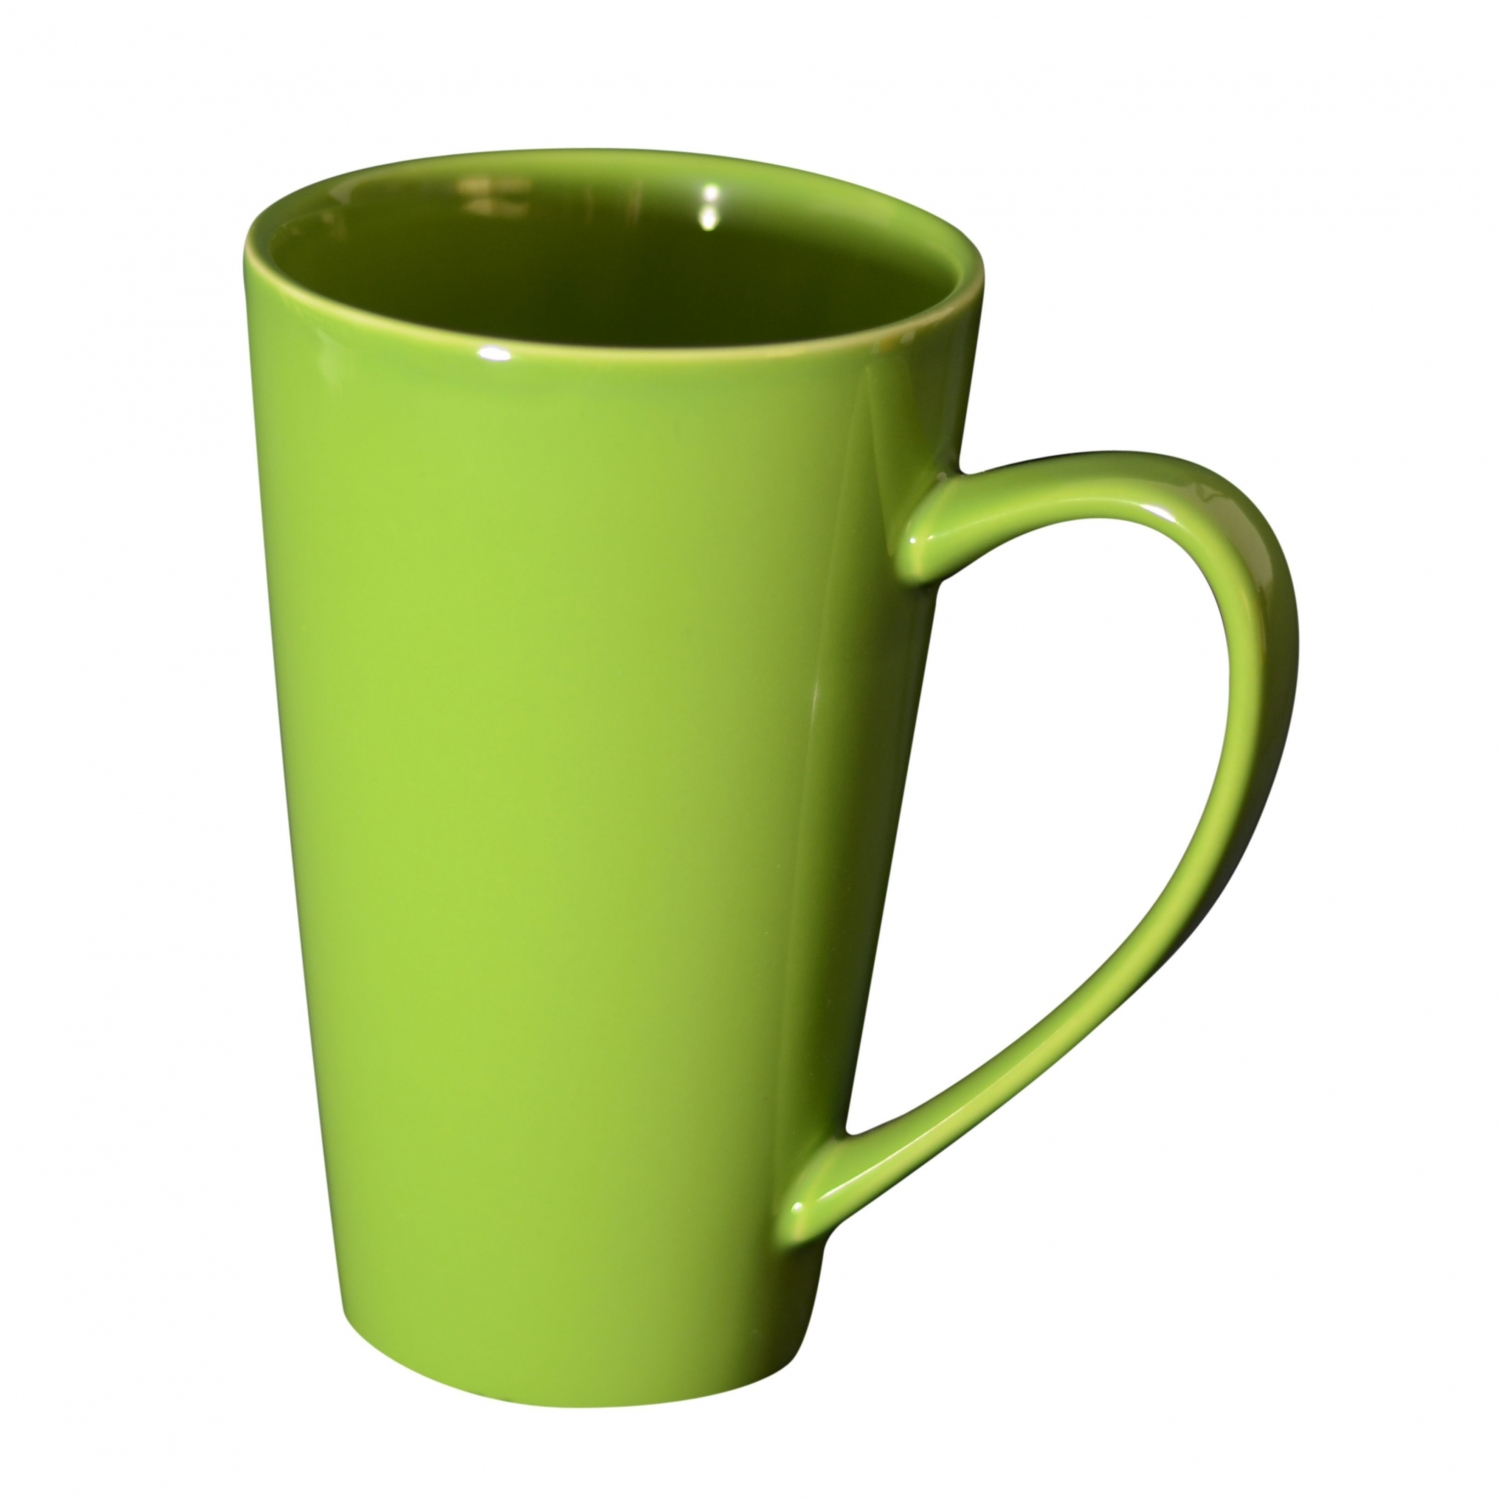 10 Strawberry Street XLMUG-GRN 24 oz. Green Oversized Latte Mug - 12 pcs